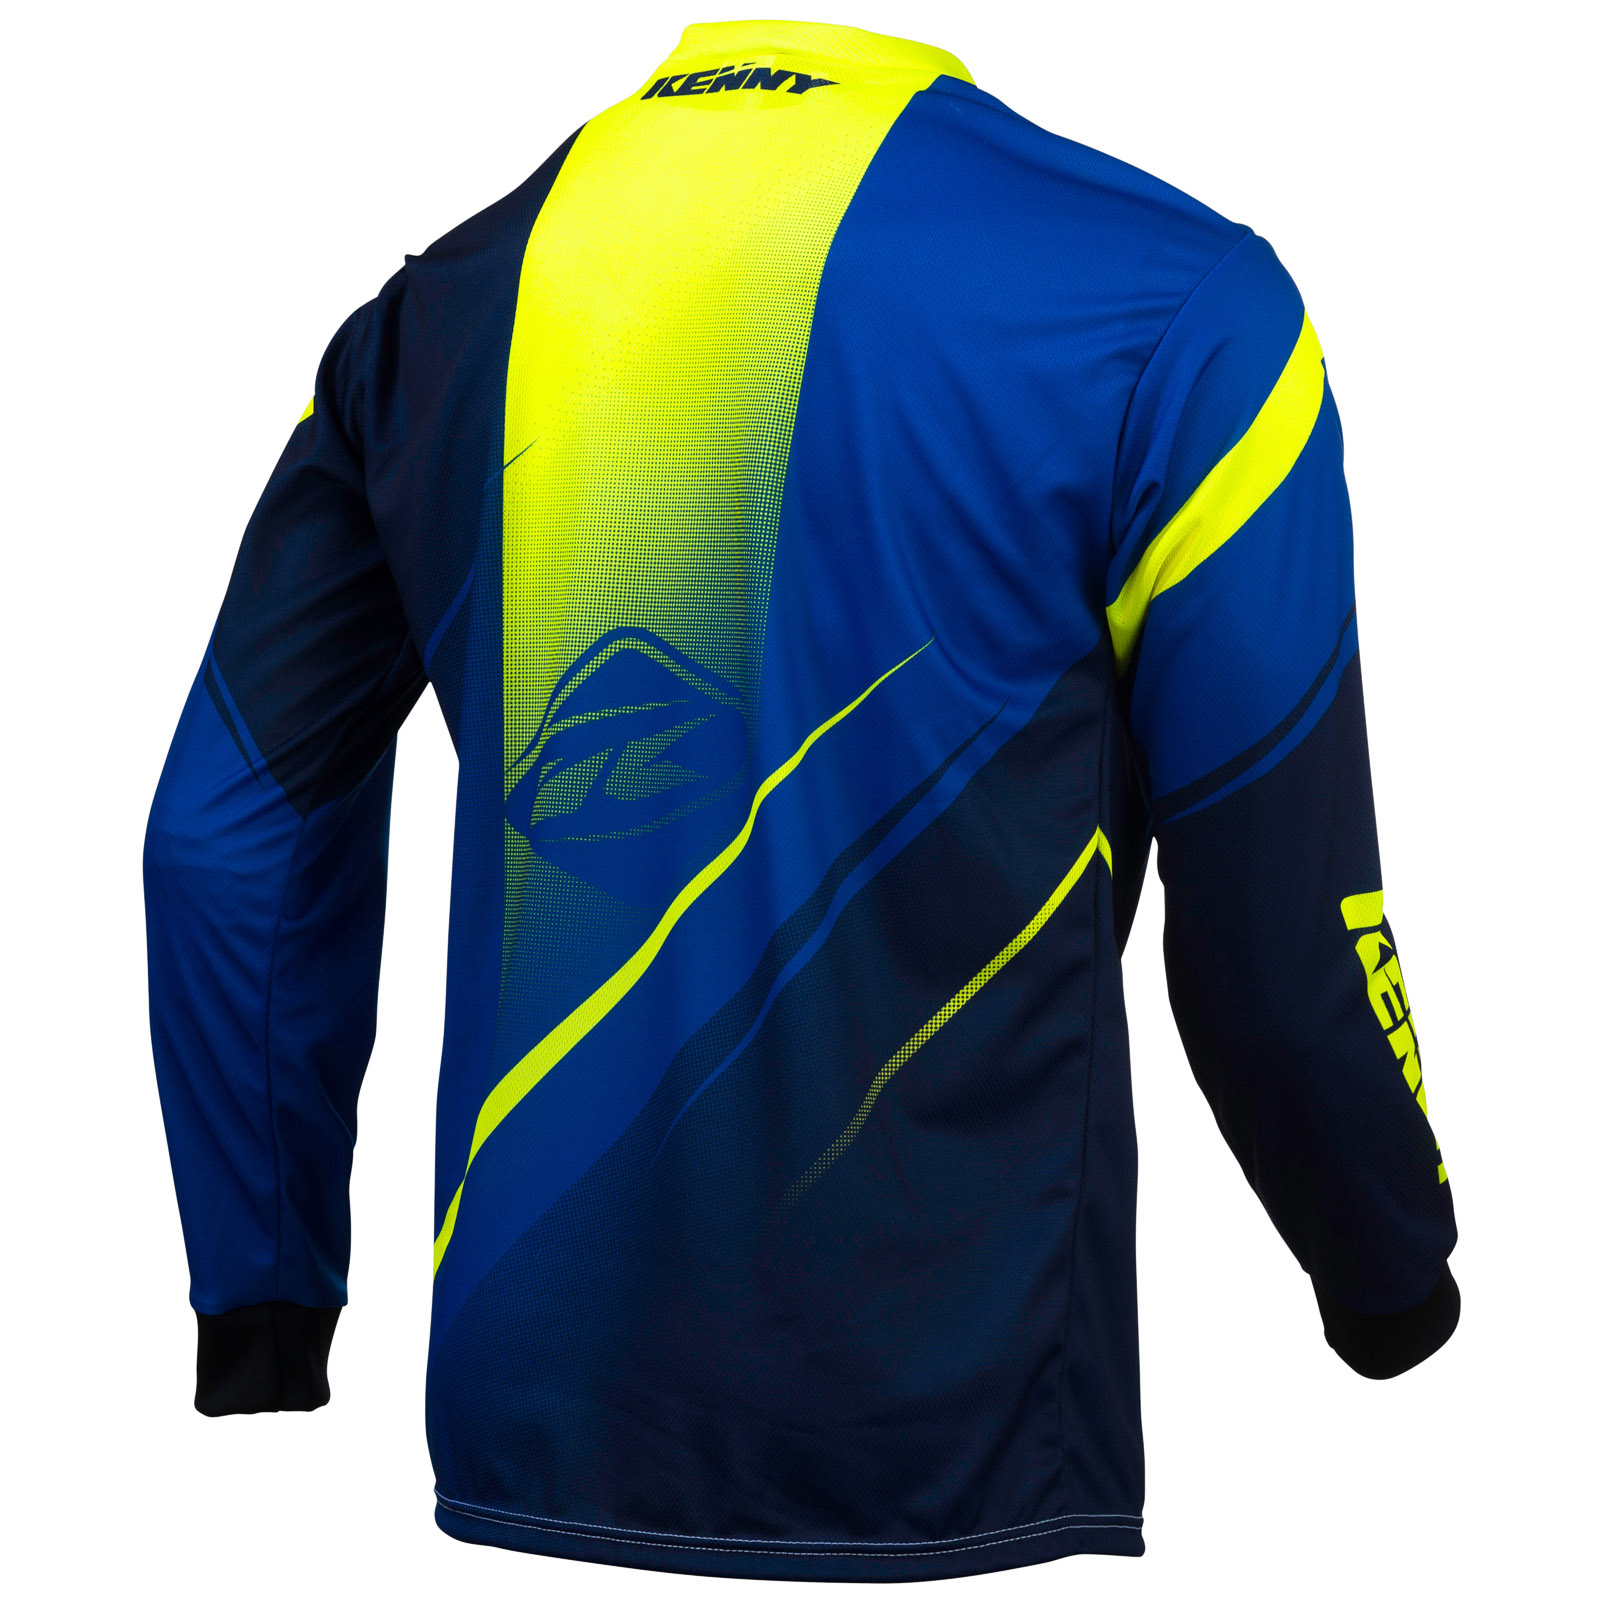 Maillot kenny track manches longues bleu/jaune fluo 2016   probikeshop